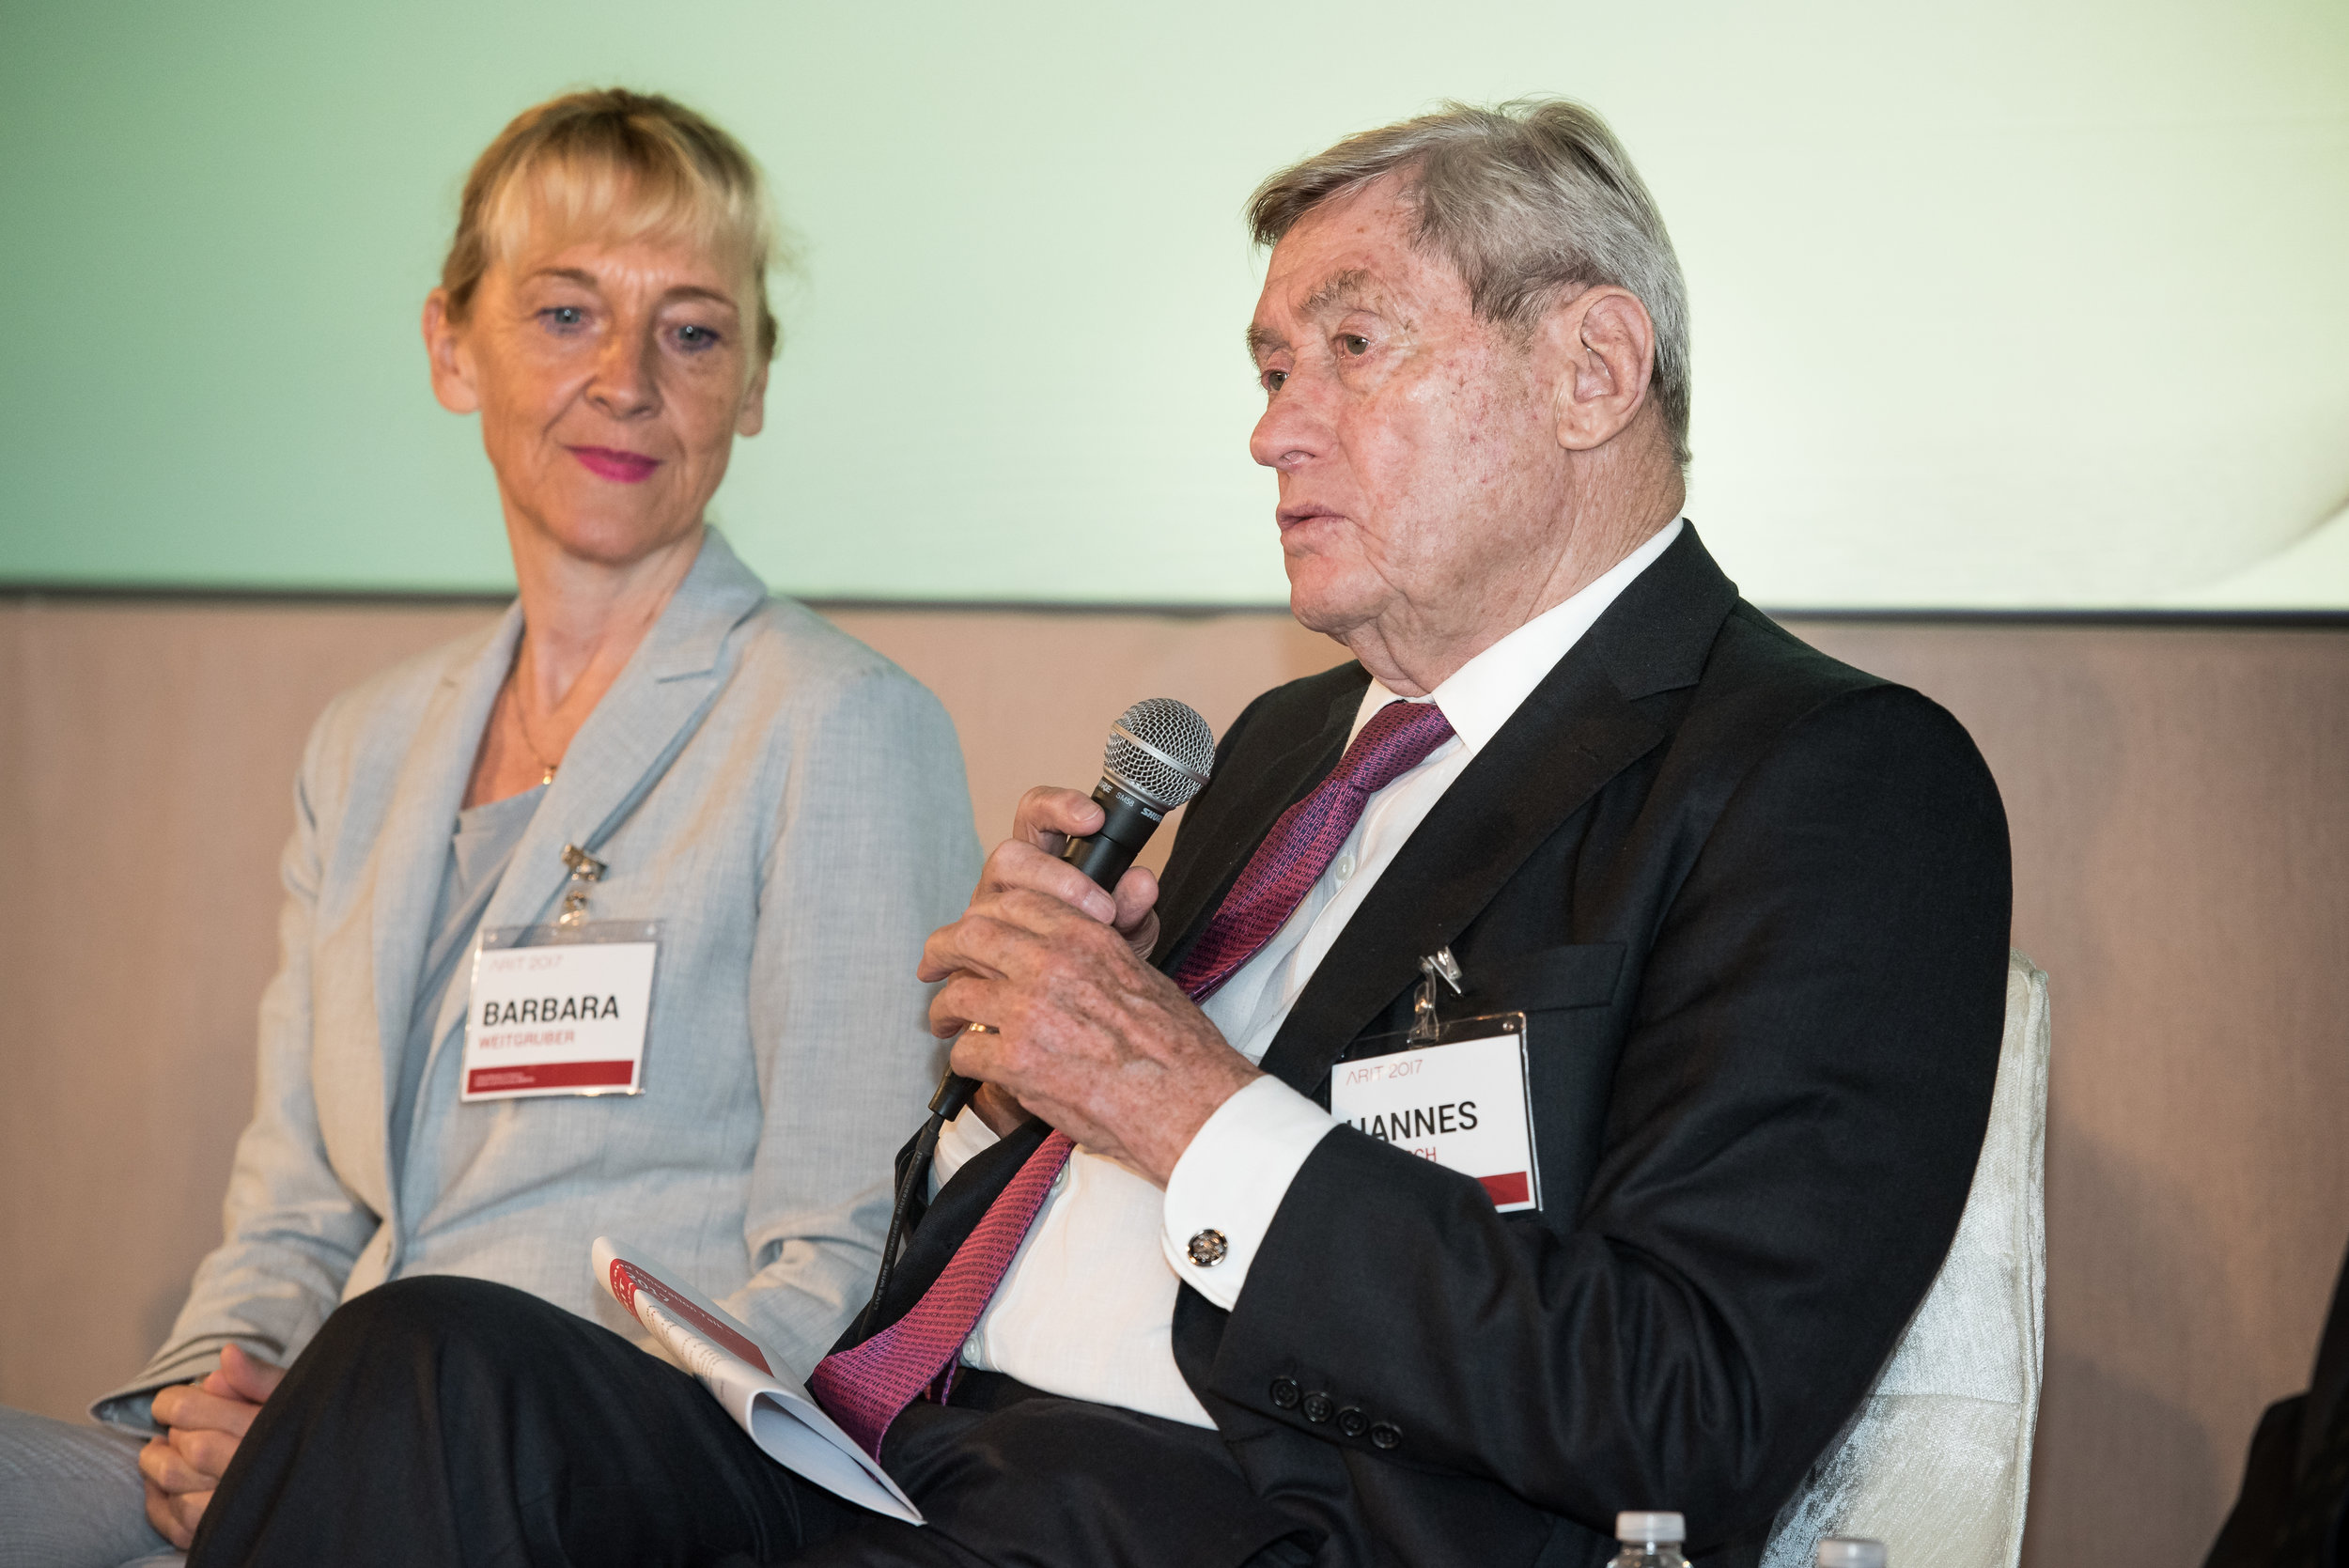 from left: Barbara Weitgruber,Director General for Scientific Research and International Relations at the Austrian Federal Ministry of Science, Research and Economy, and Hannes Androsch, Chairman of the Austrian Council for Research and Technology Development